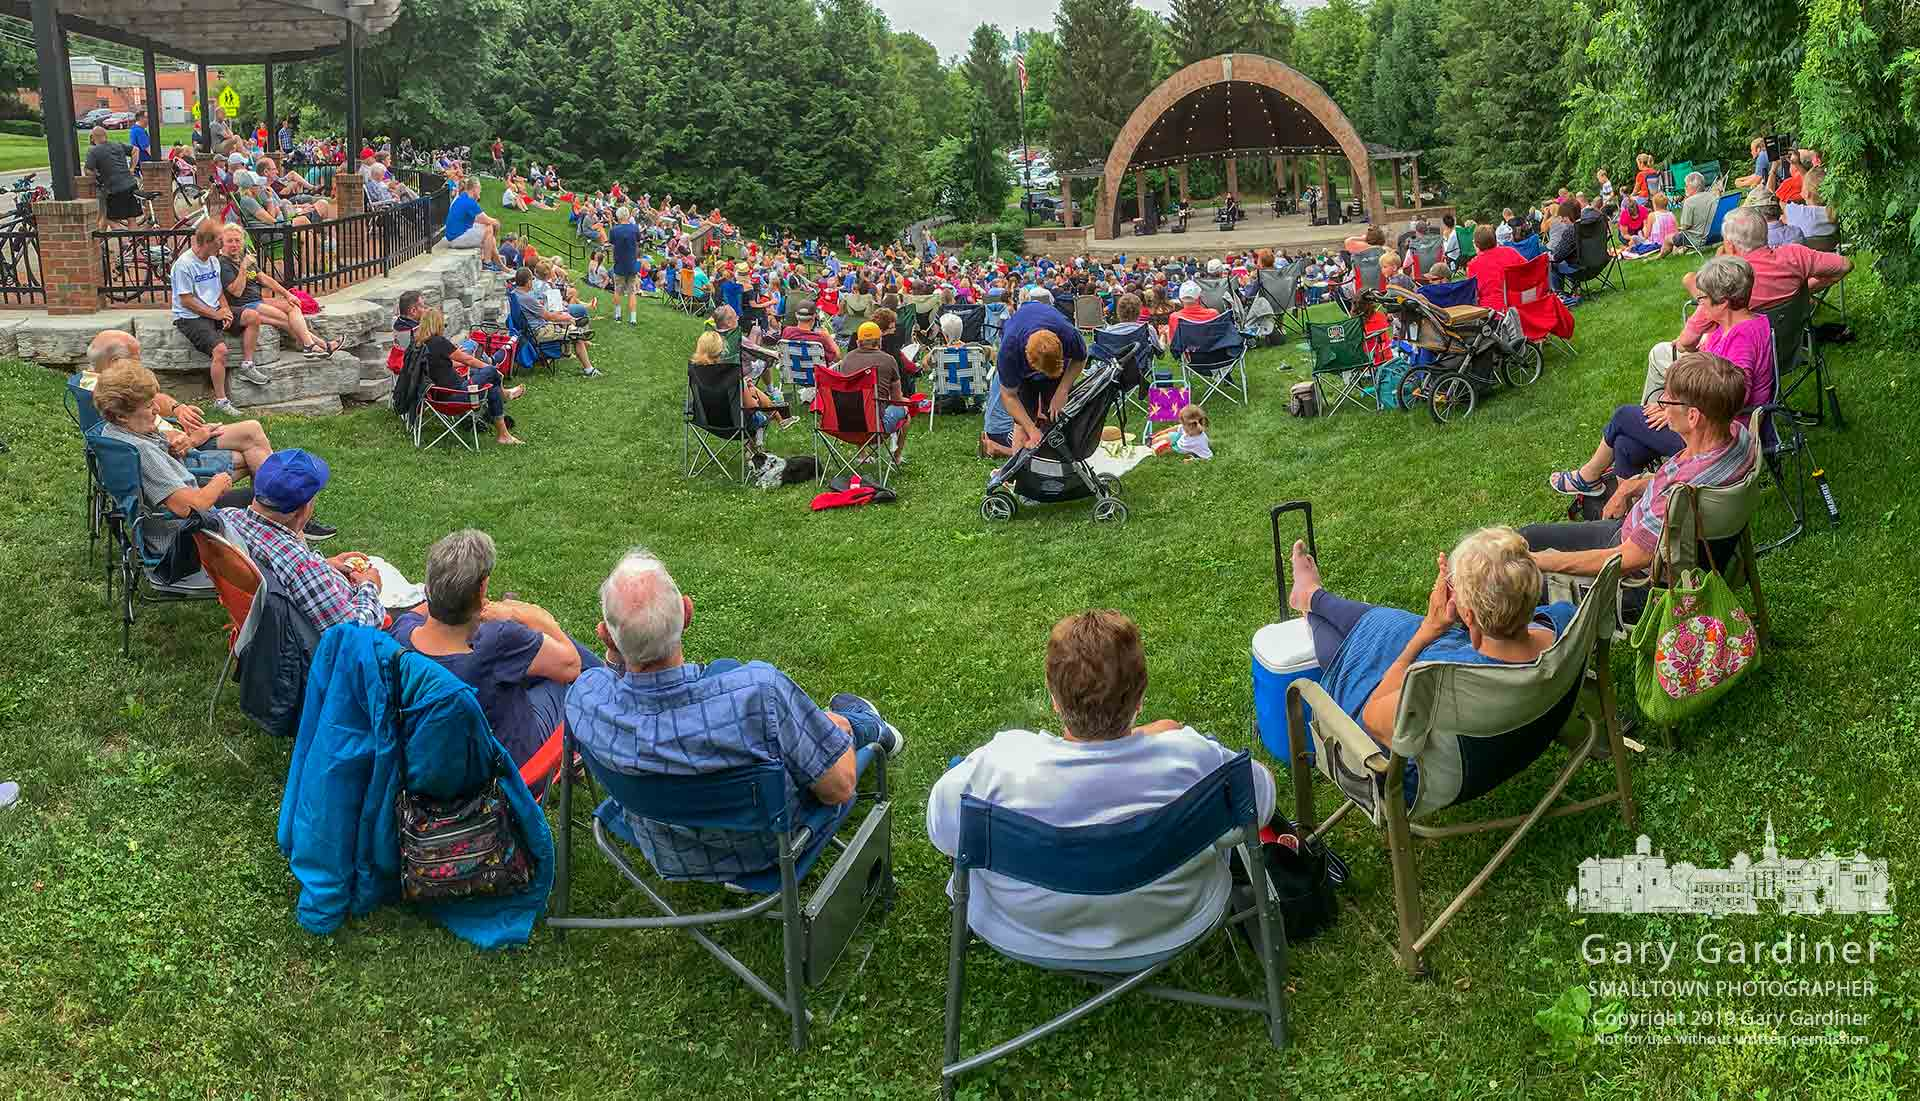 Family and friends gather in a large arc at the top edge of the Alum Creek Amphitheater to listen to The Reaganomics in the opening concert of the Summer Concert Series at the park. My Final Photo for June 9, 2019.